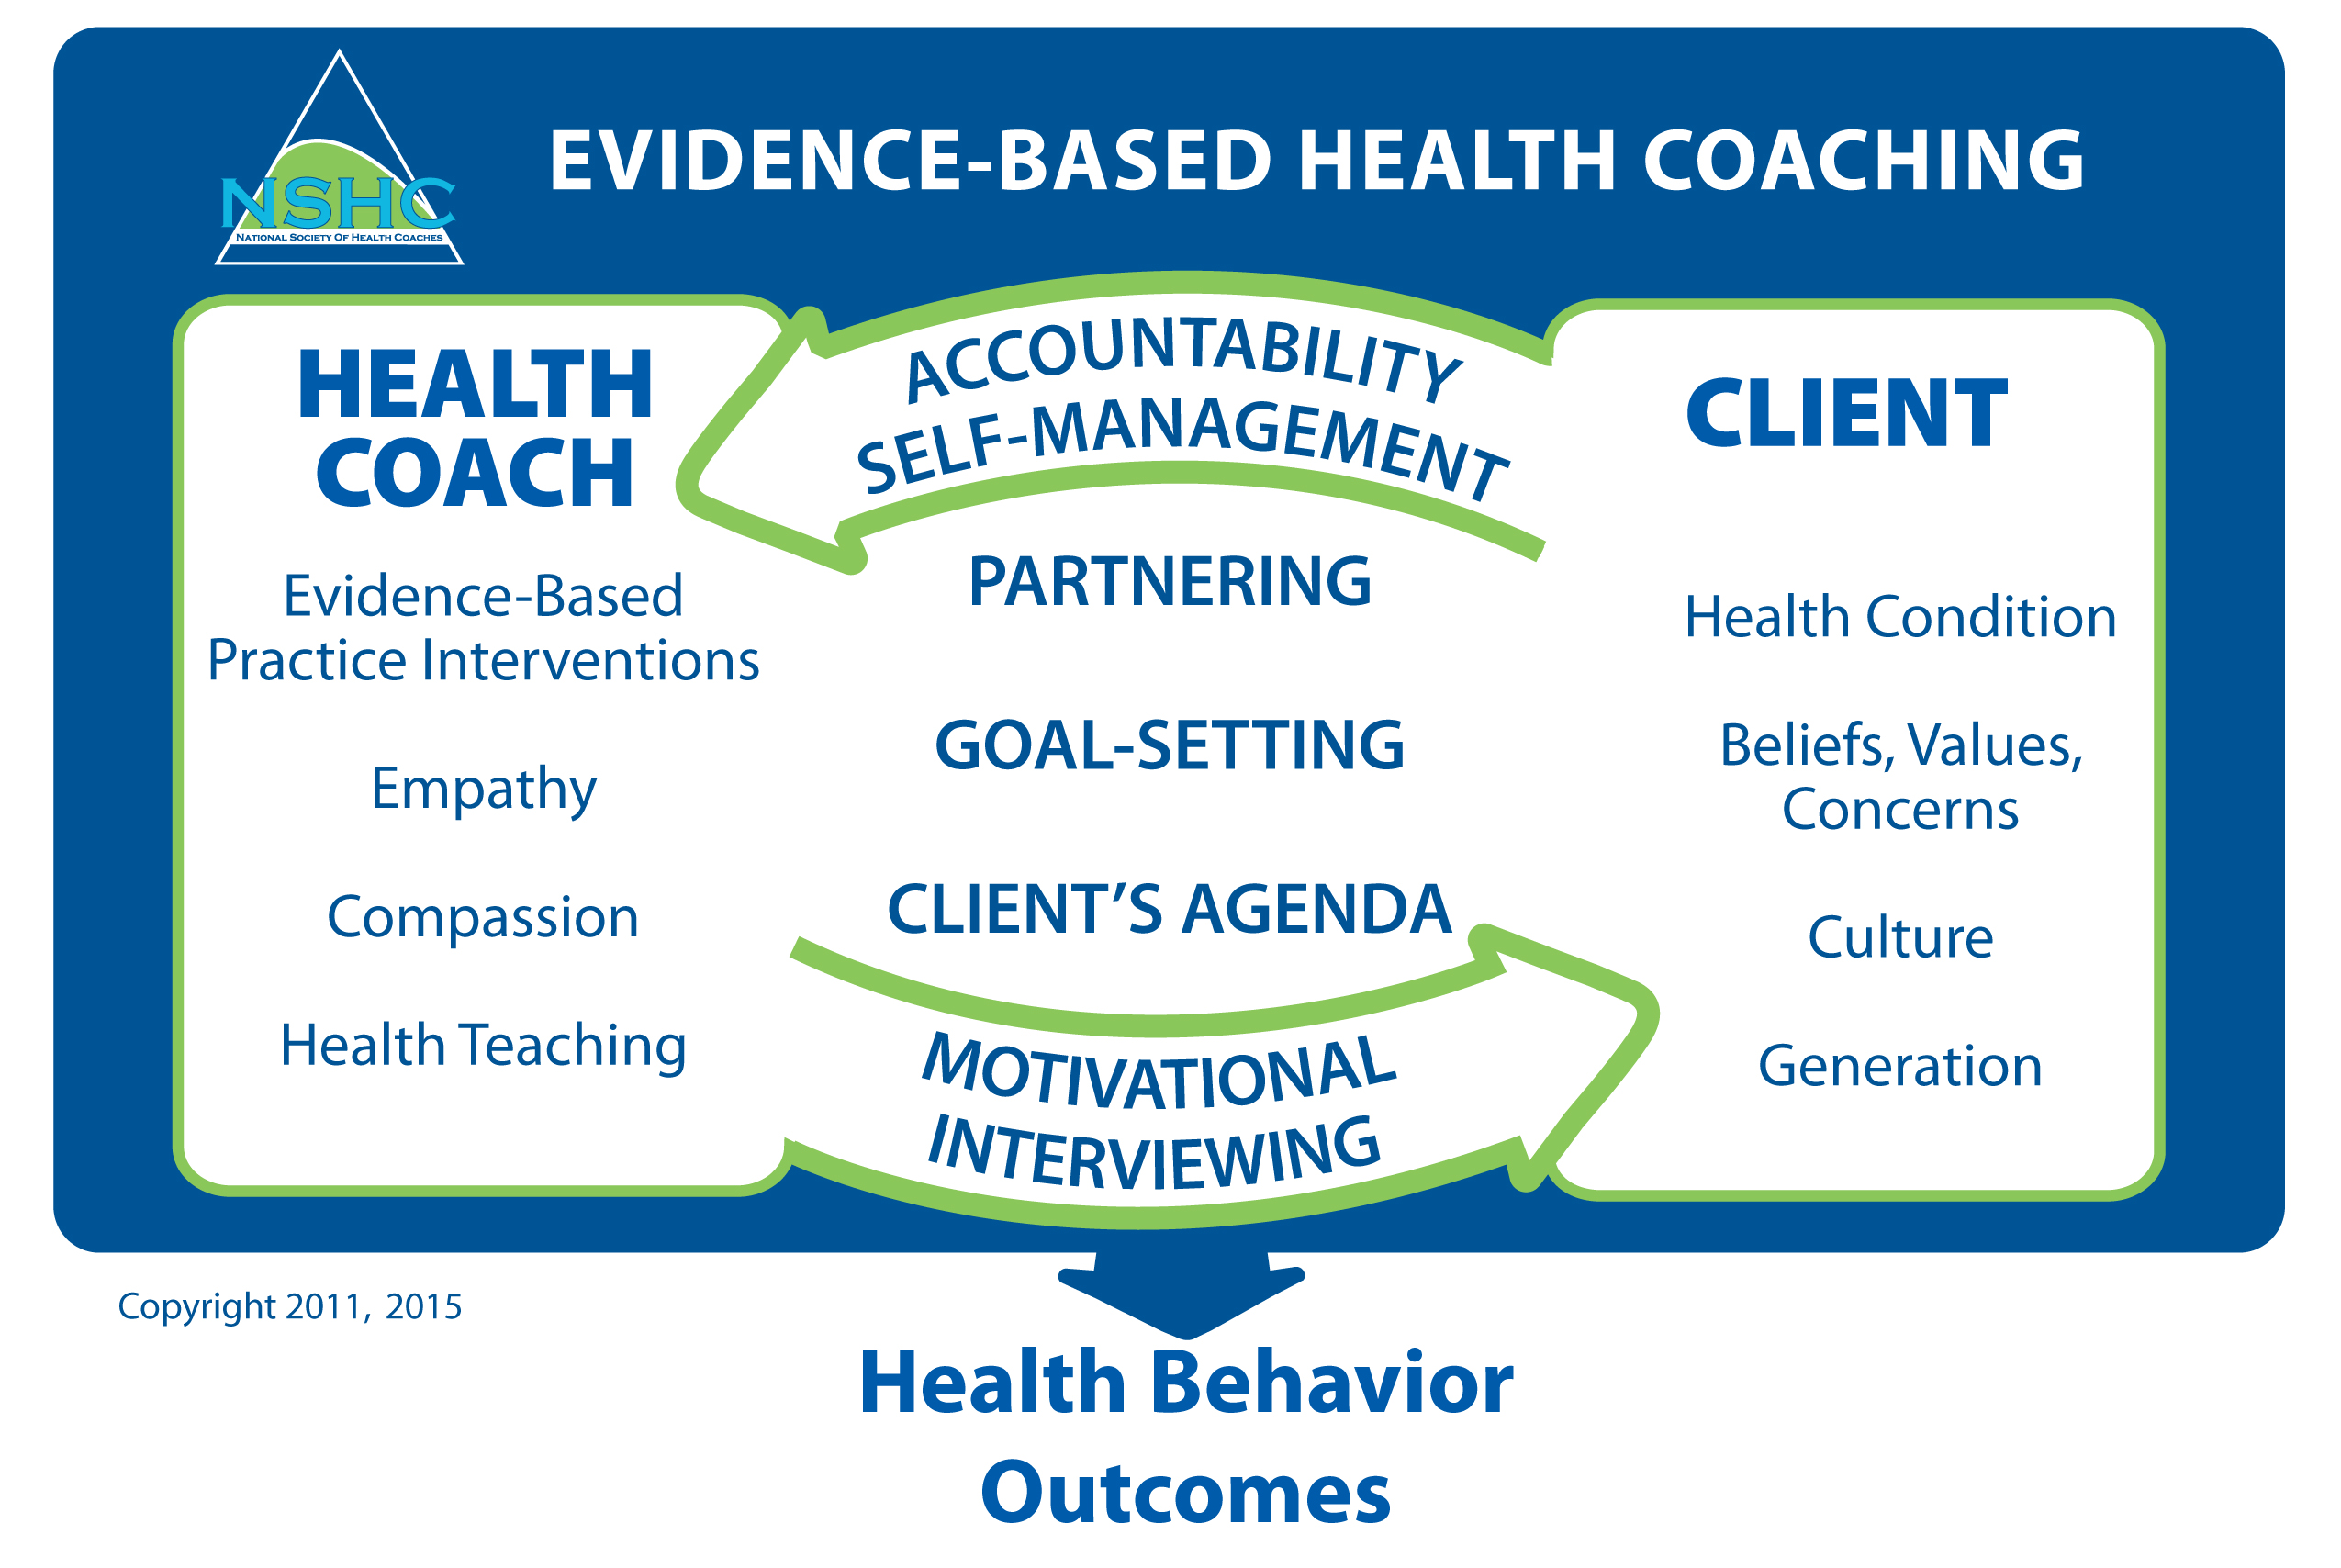 Health coach certification national society of health coaches first clinical model of evidence based health coaching ebhc xflitez Choice Image